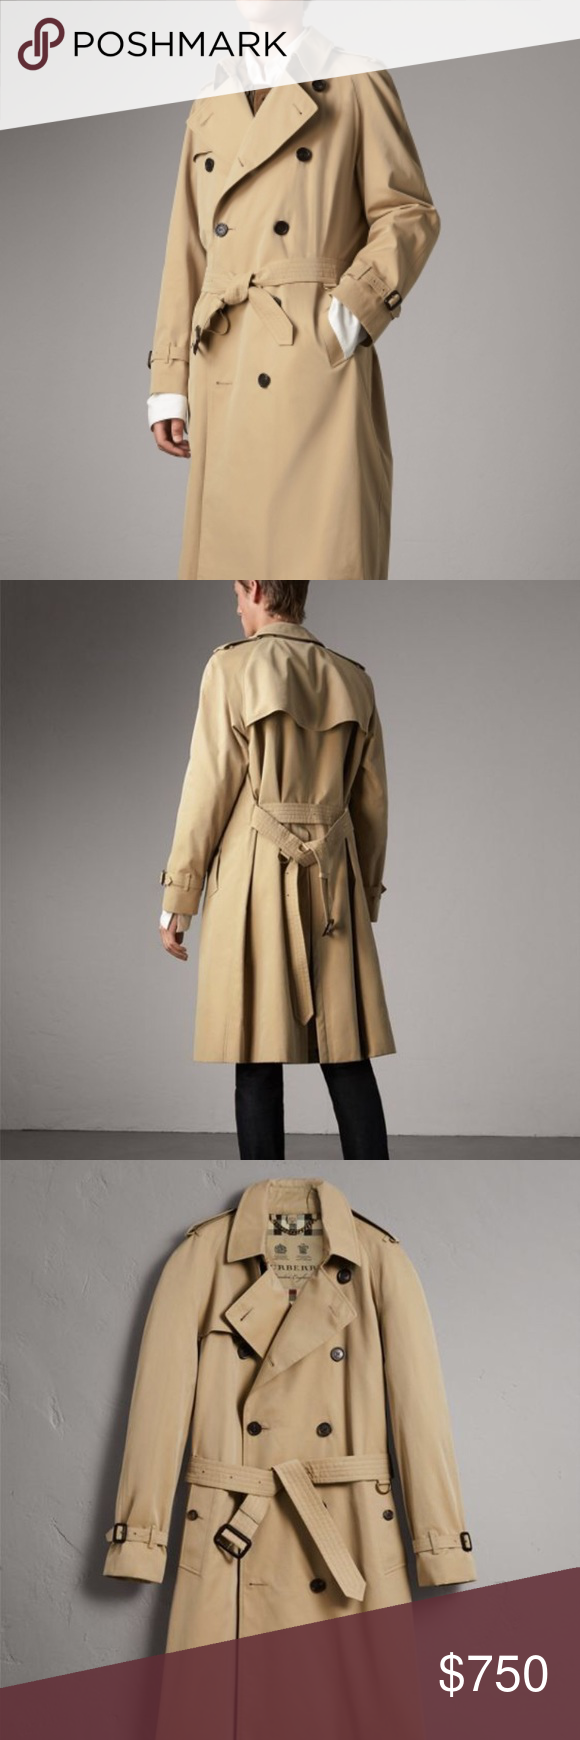 d4e6134bca8 Burberry Coat Burberrys trench coat . In excellent conditions with minimal  signs of use. Price is Firm Burberry Jackets   Coats Trench Coats